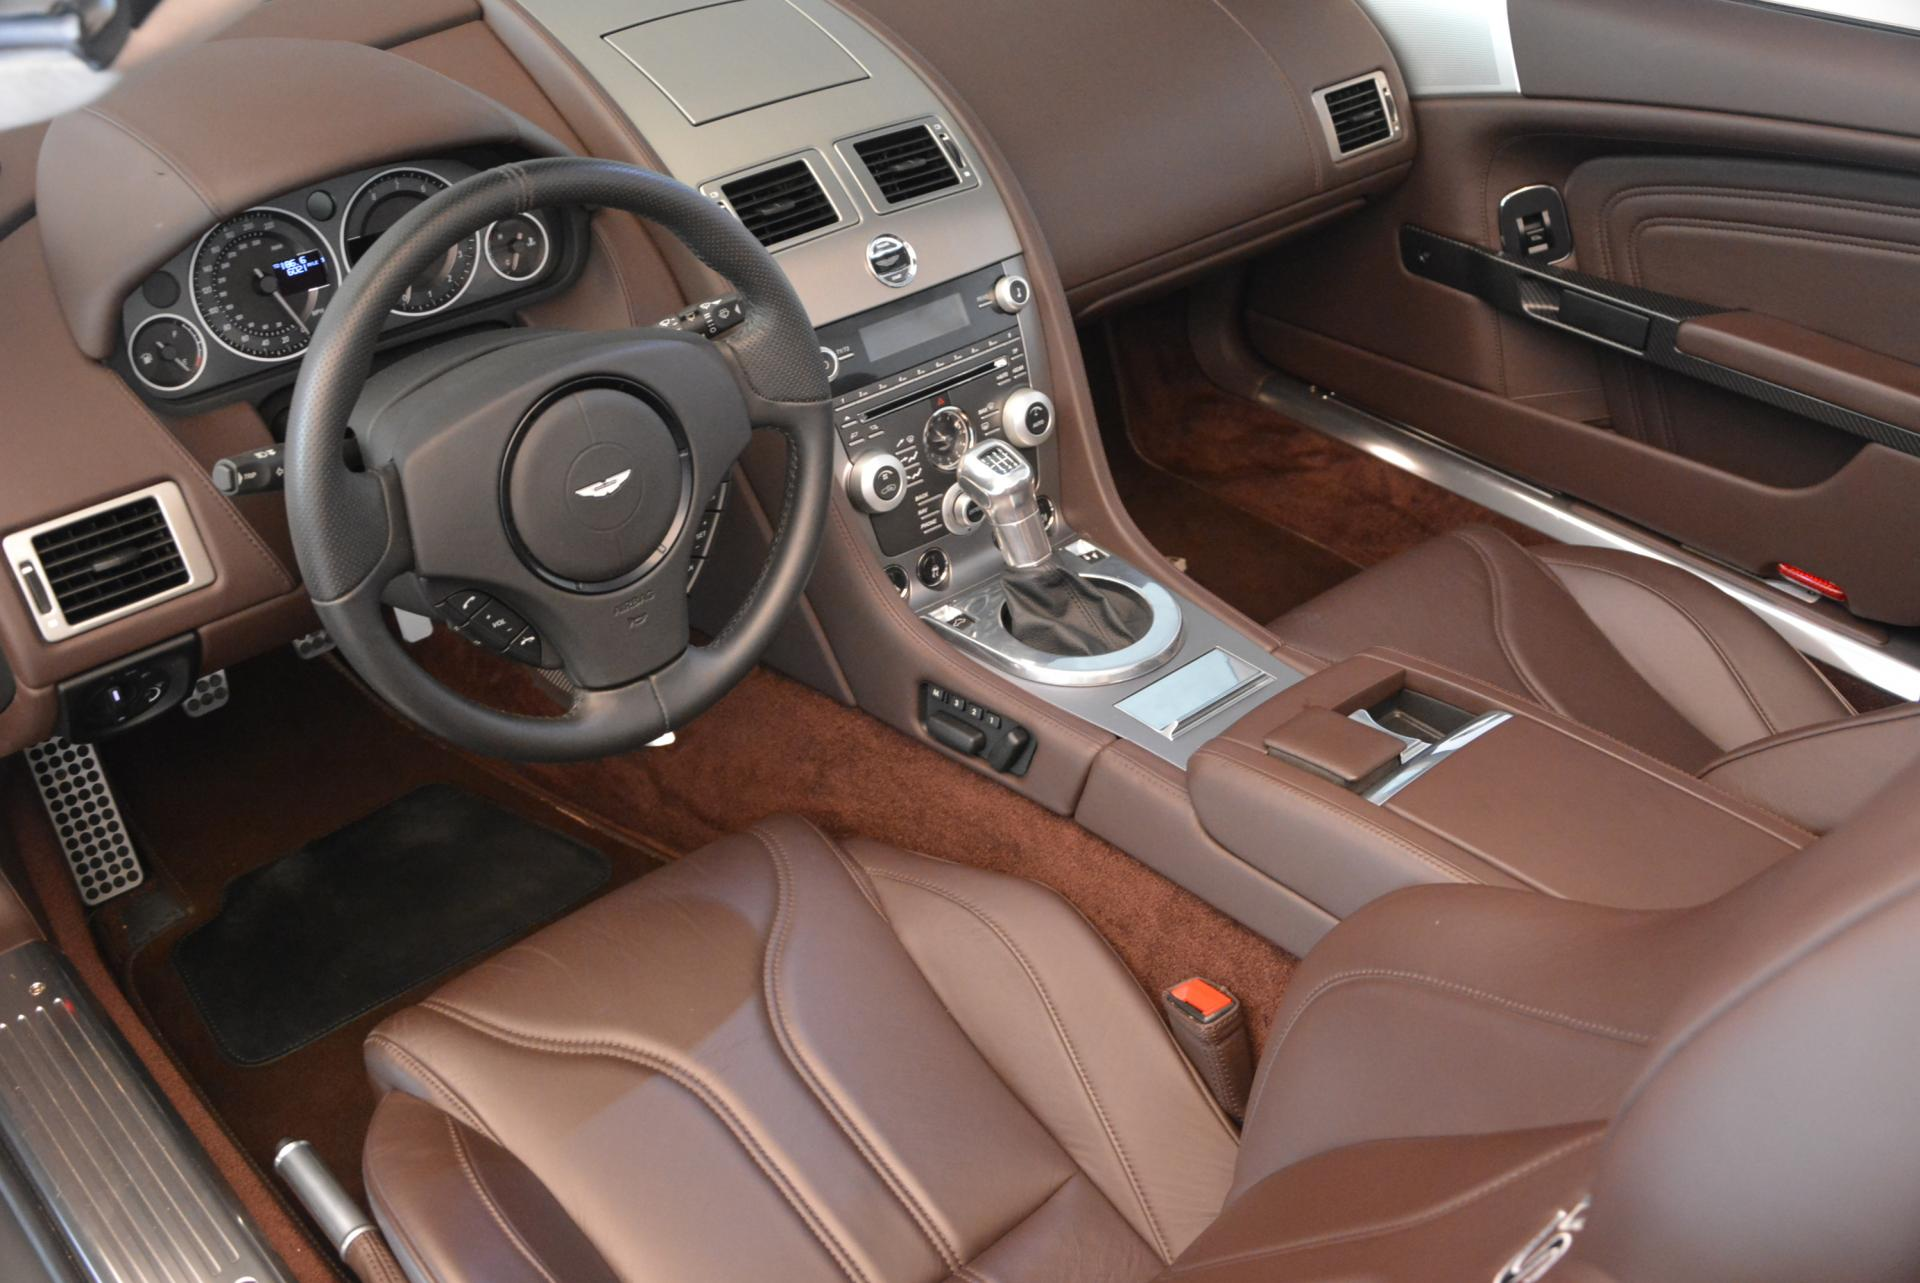 Used 2010 Aston Martin DBS Volante For Sale In Westport, CT 87_p24